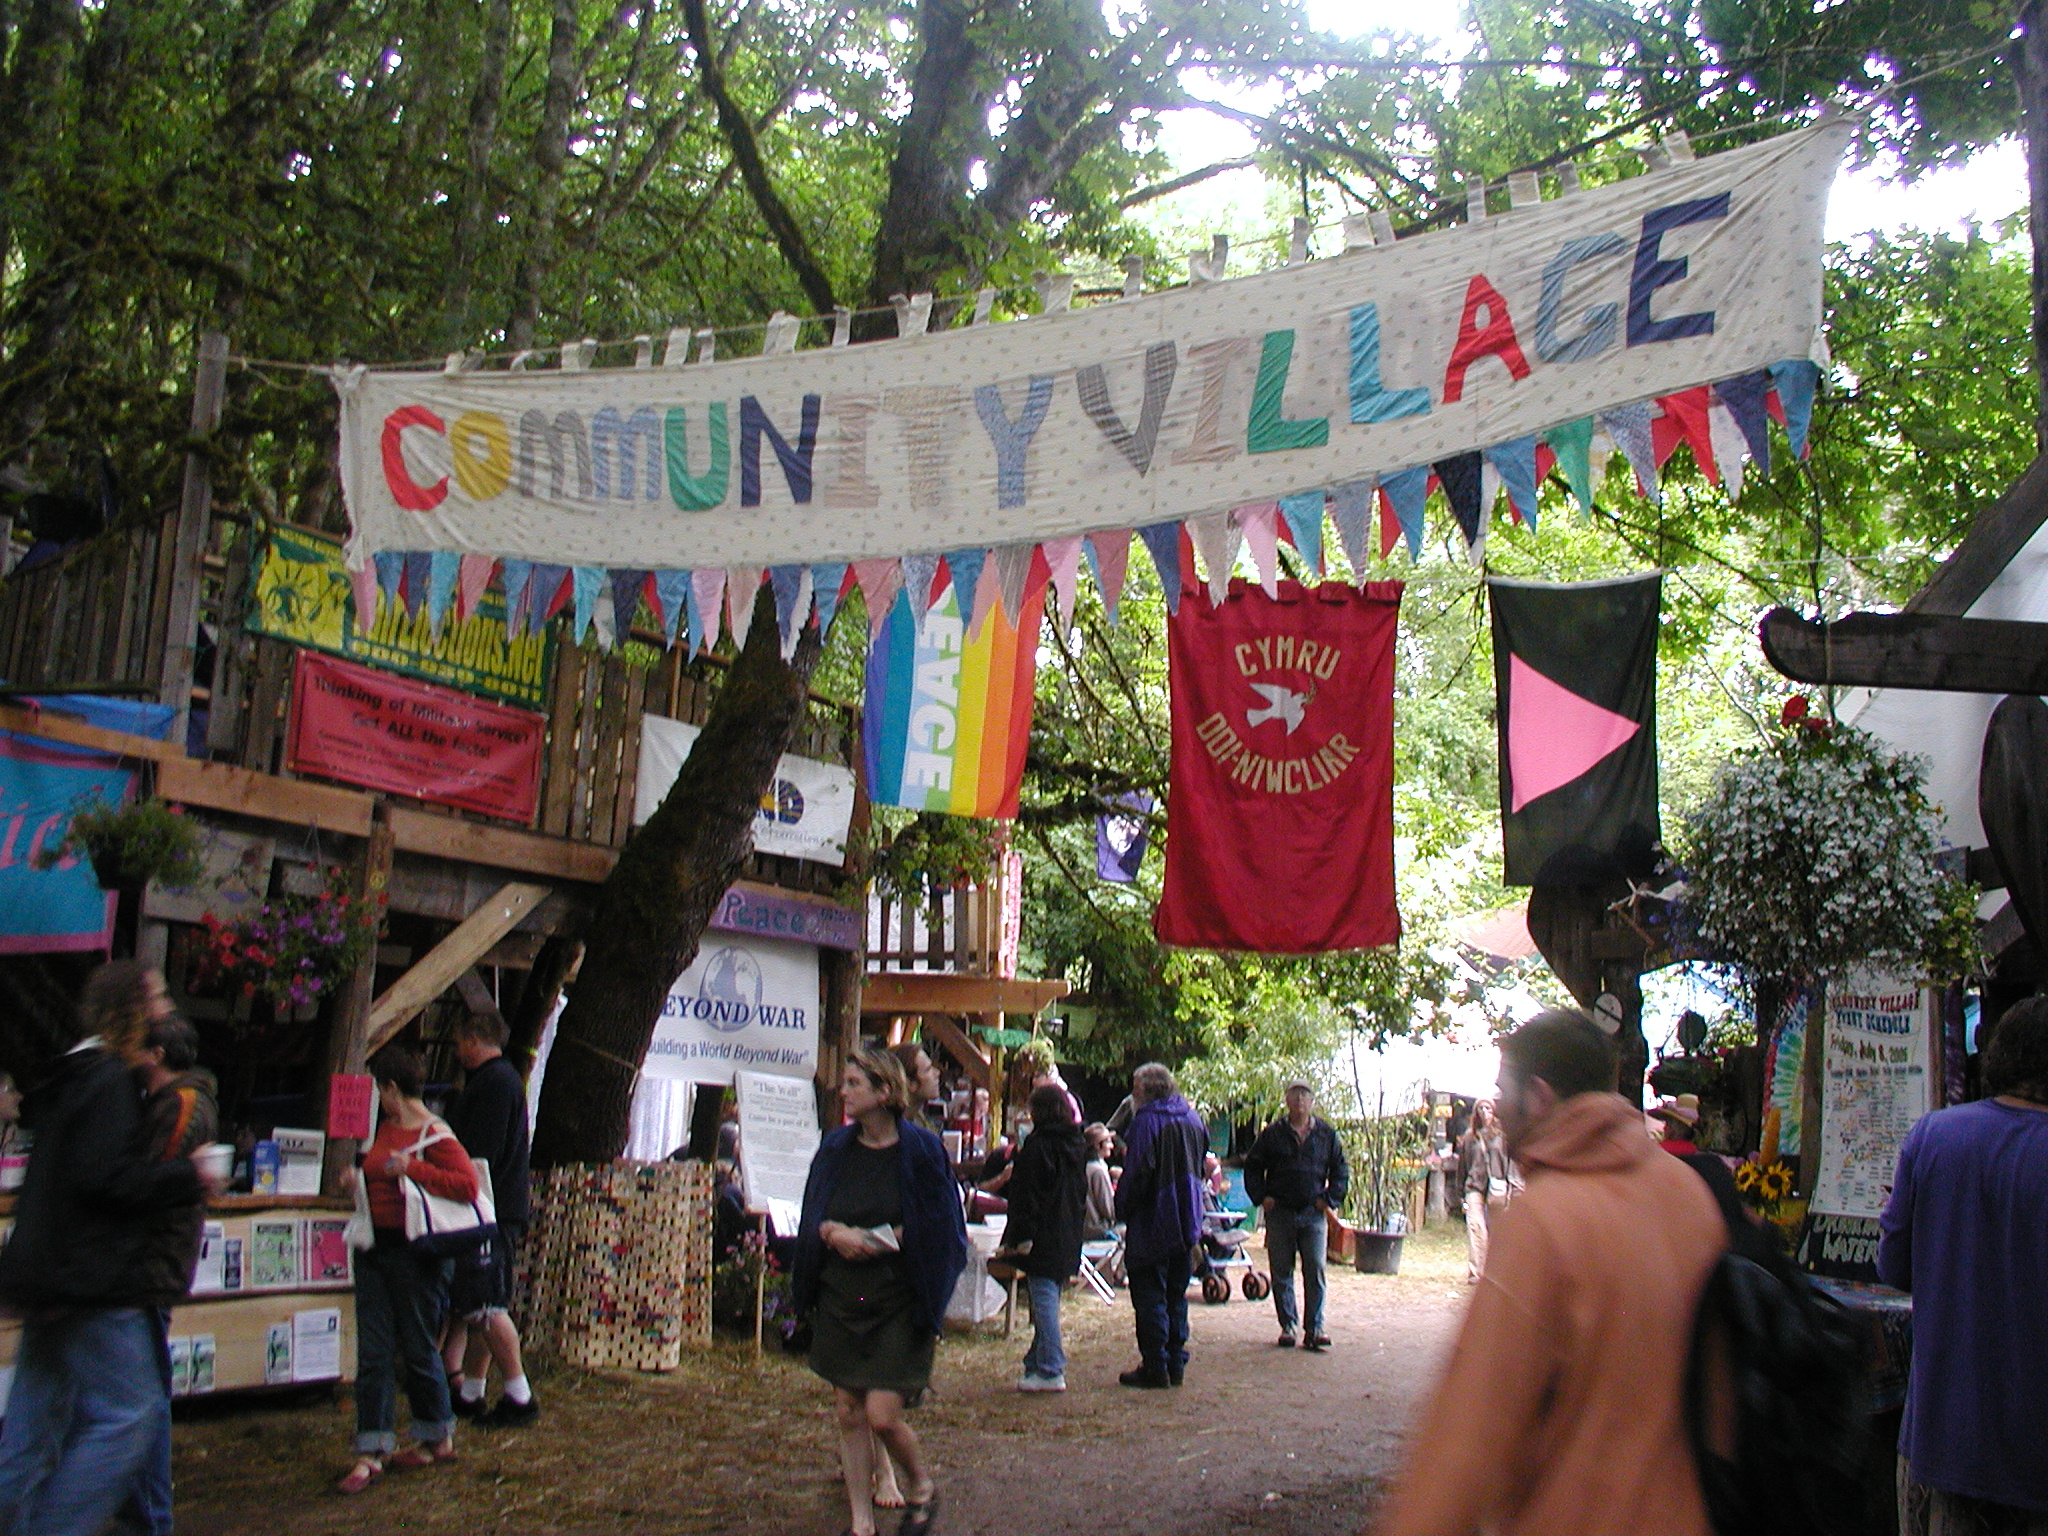 Oregon_Country_Fair_2005_Community_Villiage.jpg